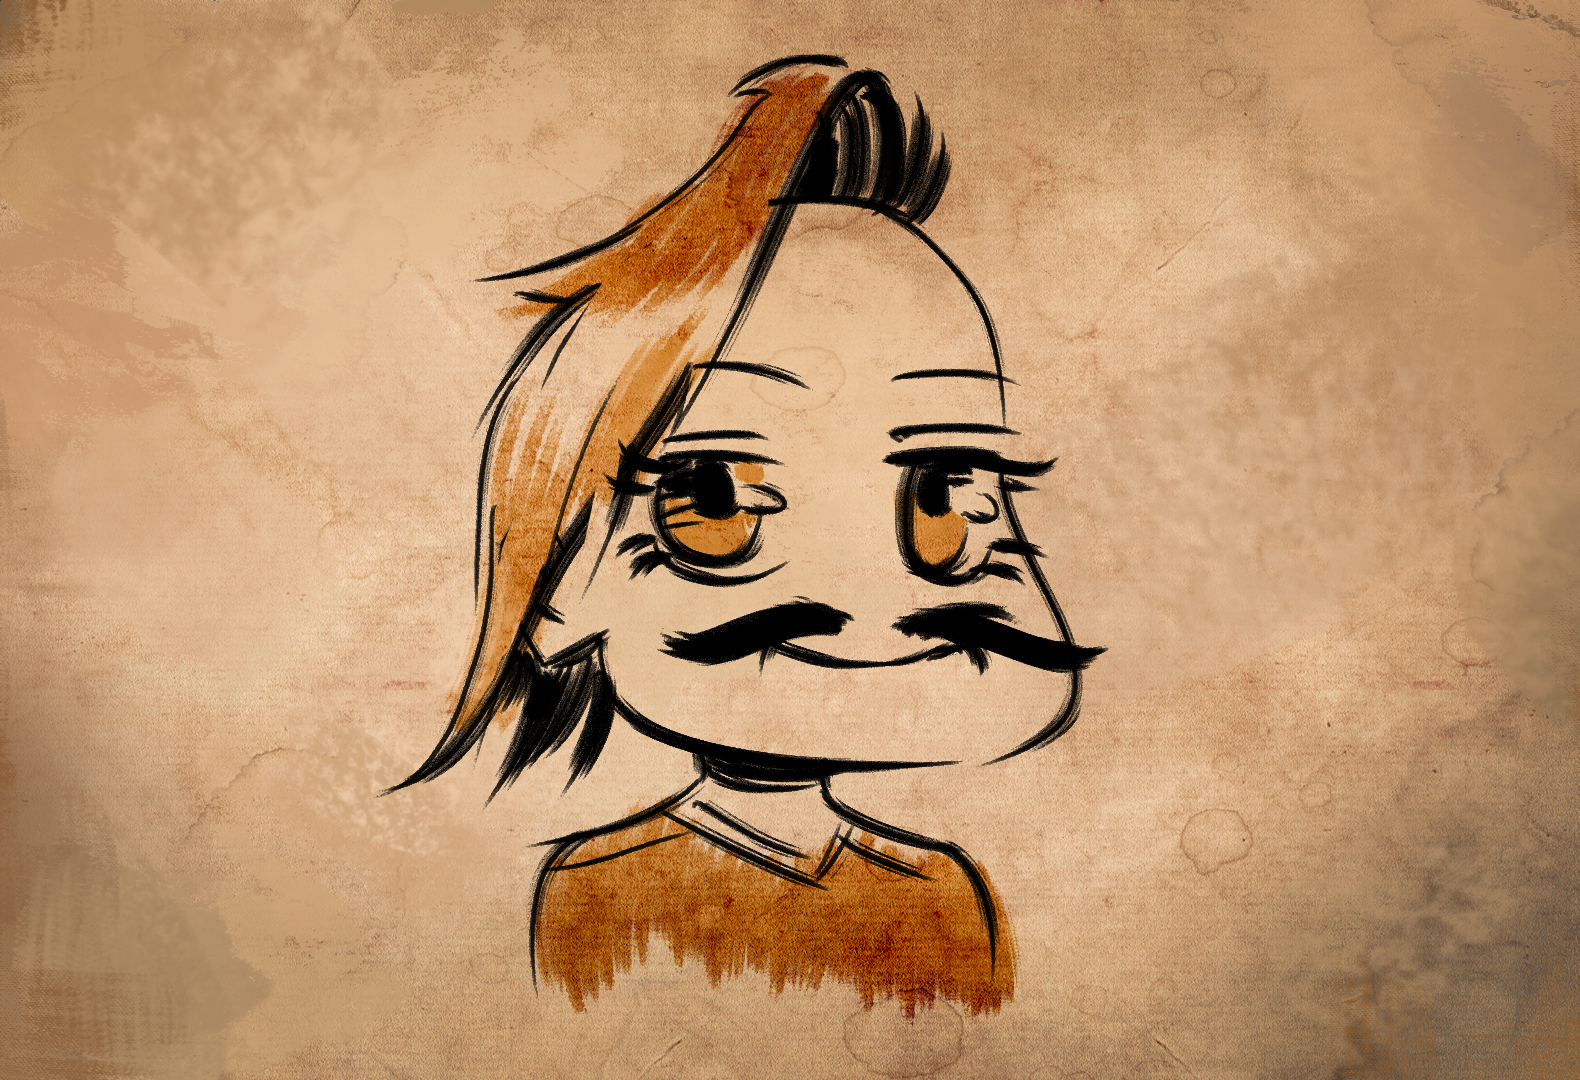 Felipe de Barros — Chibi Mustache Benji (fan request on stream)